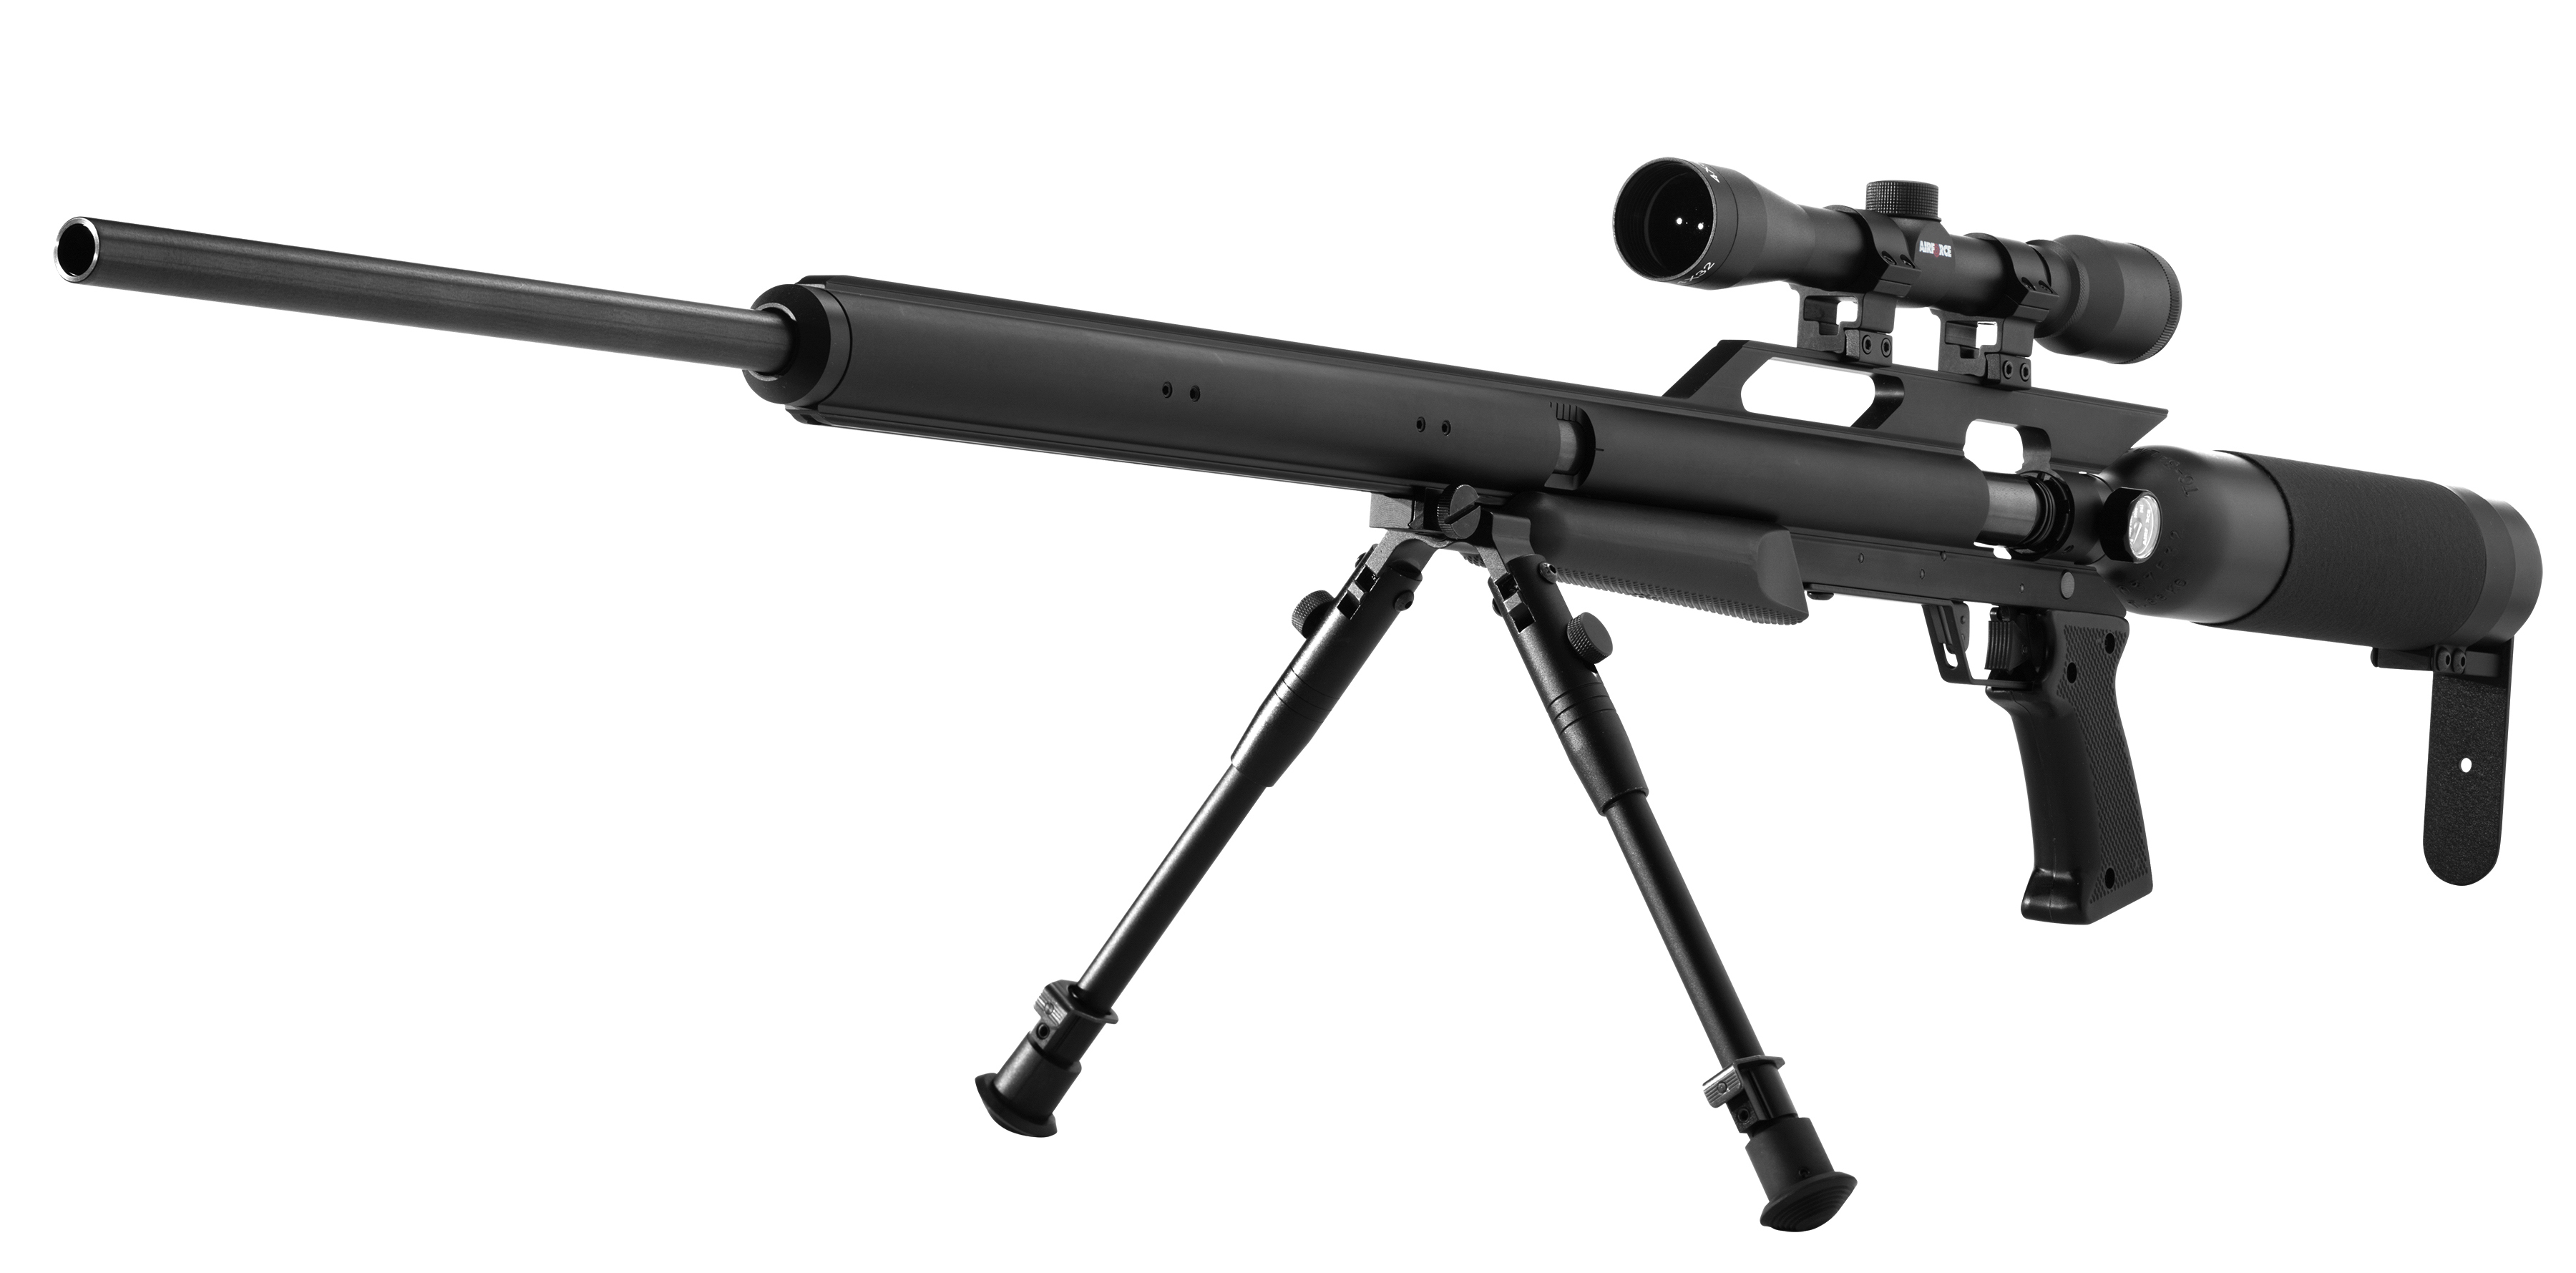 The Texan By Airforce Airguns